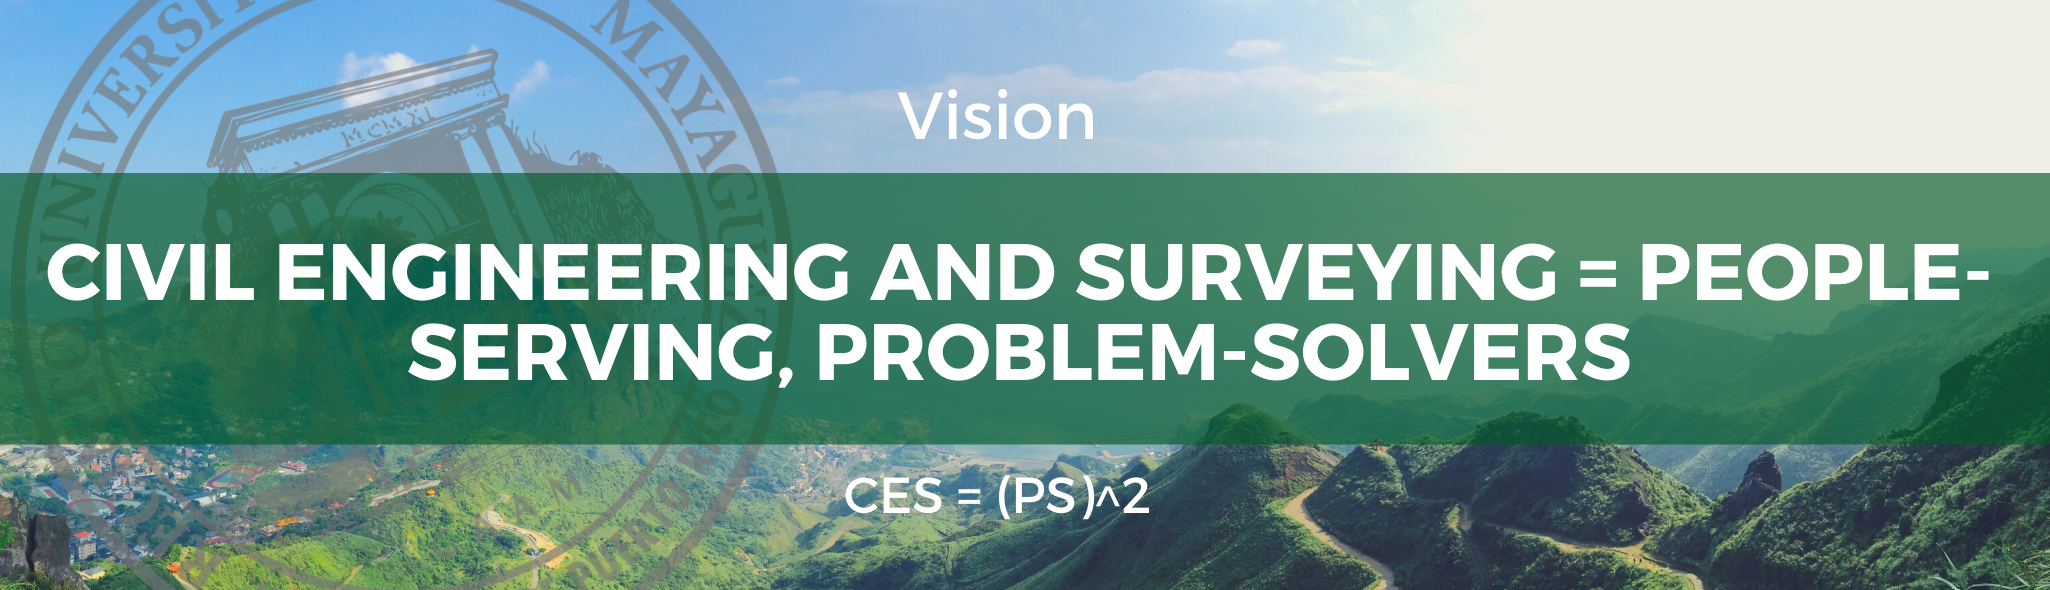 Department of Civil Engineering and Surveying Vision